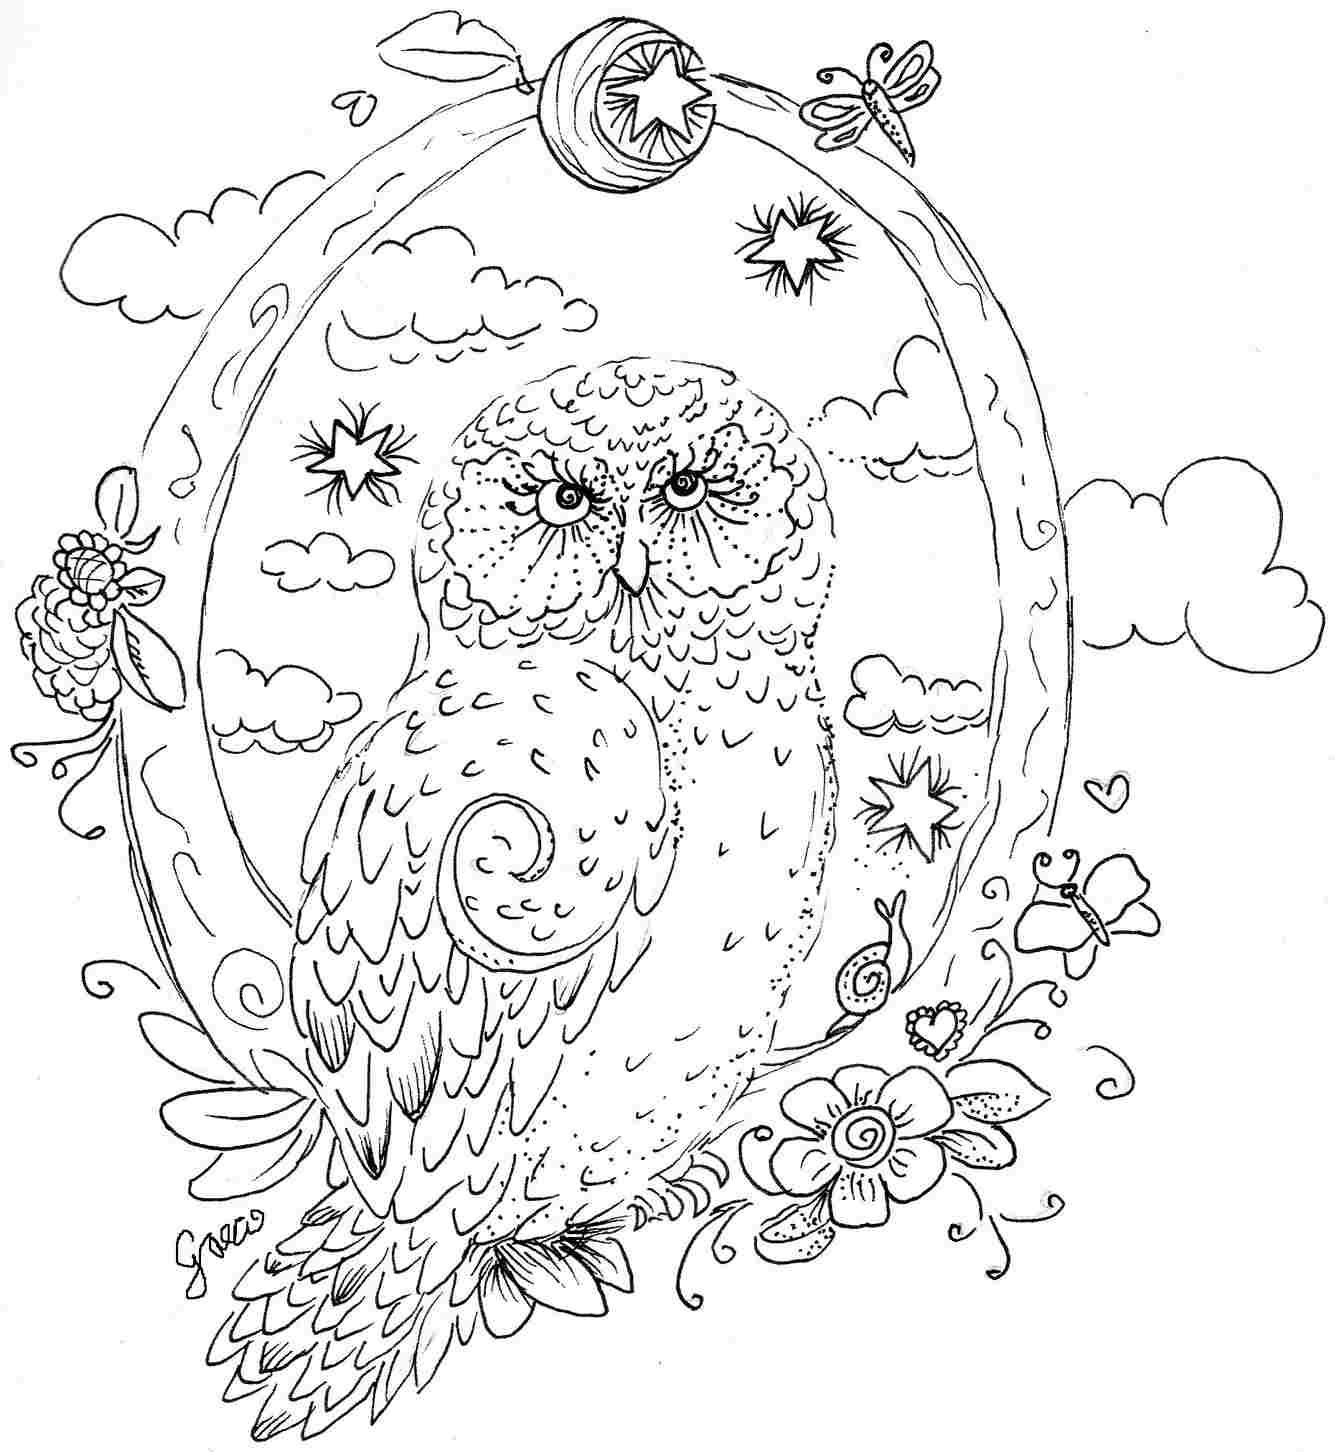 magical creature coloring pages - photo#38